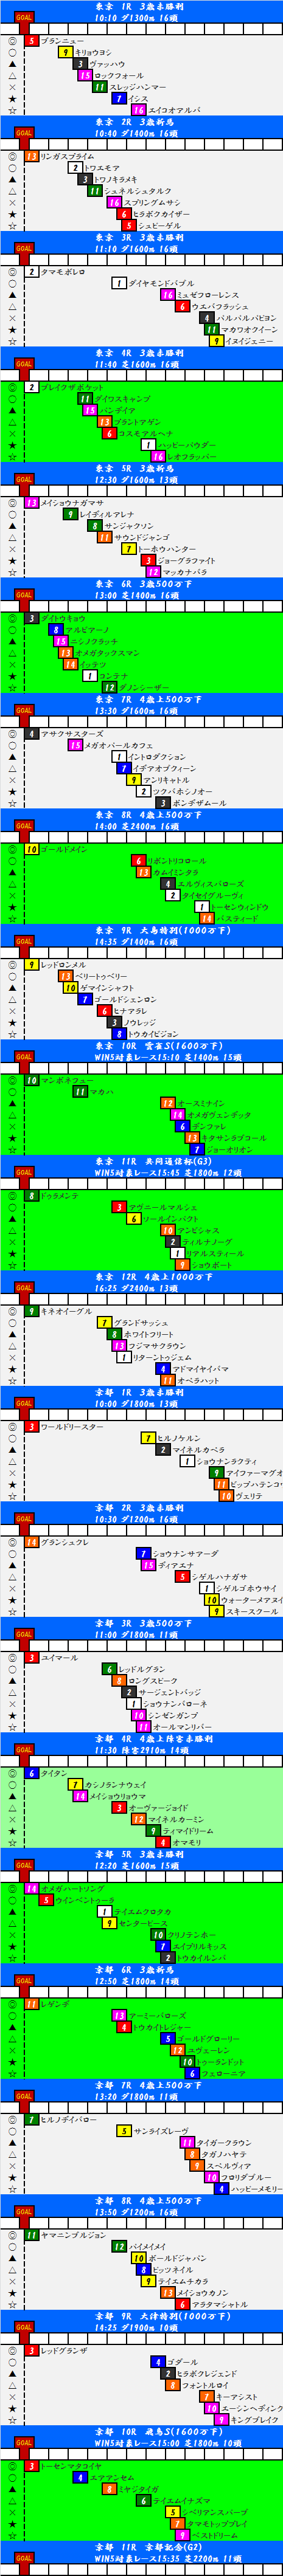 2015021501.png